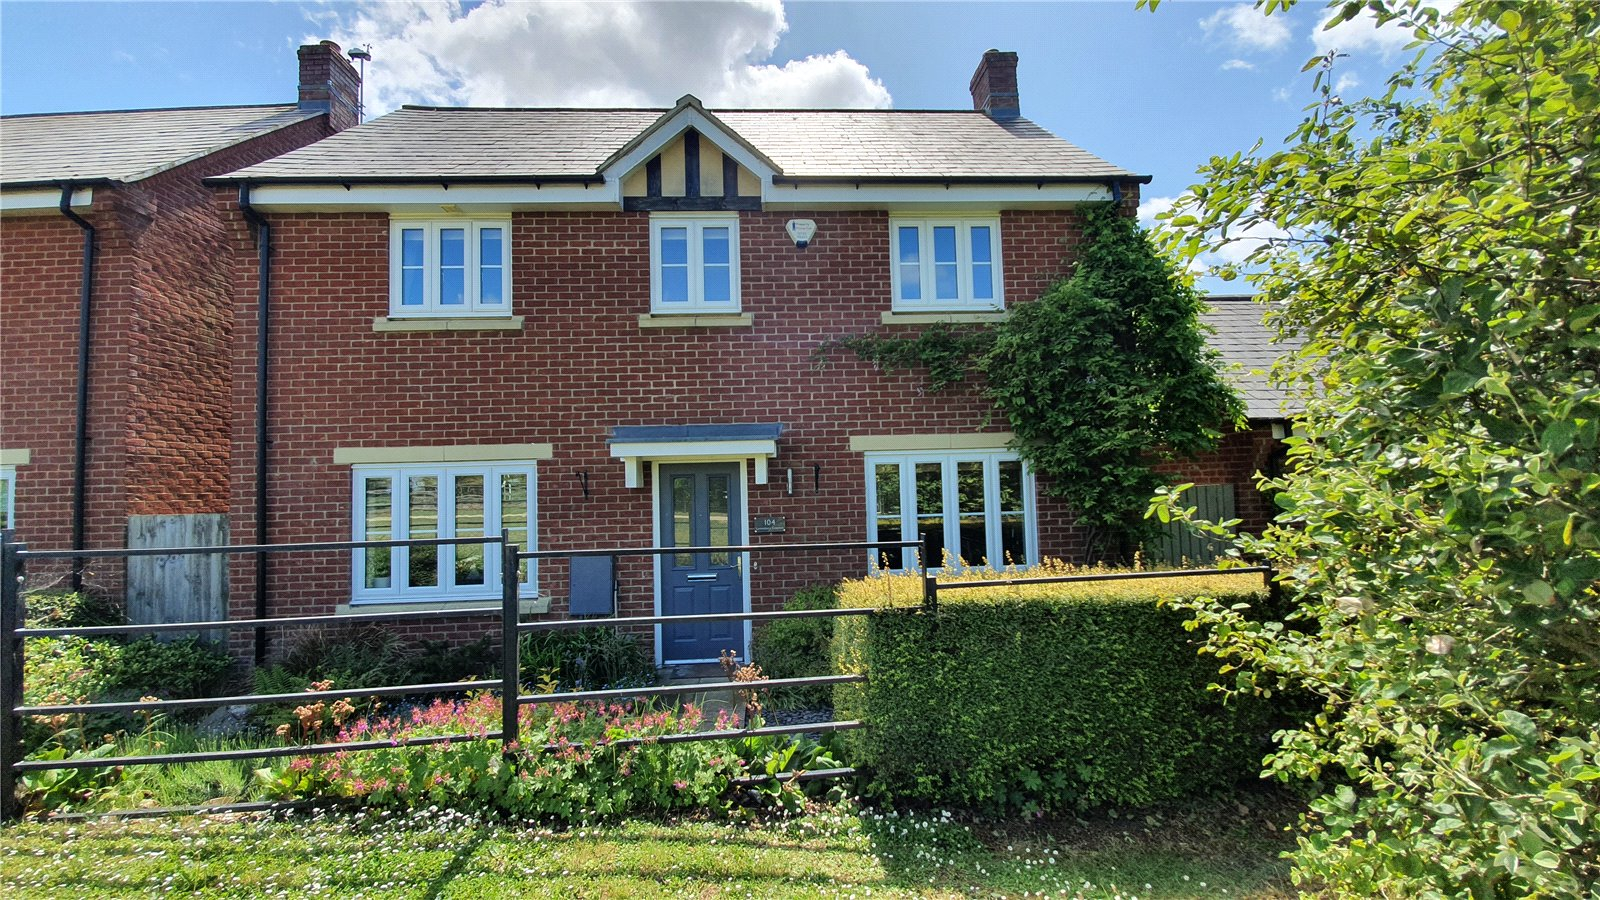 3 bed house for sale in Lannesbury Crescent, St Neots - Property Image 1